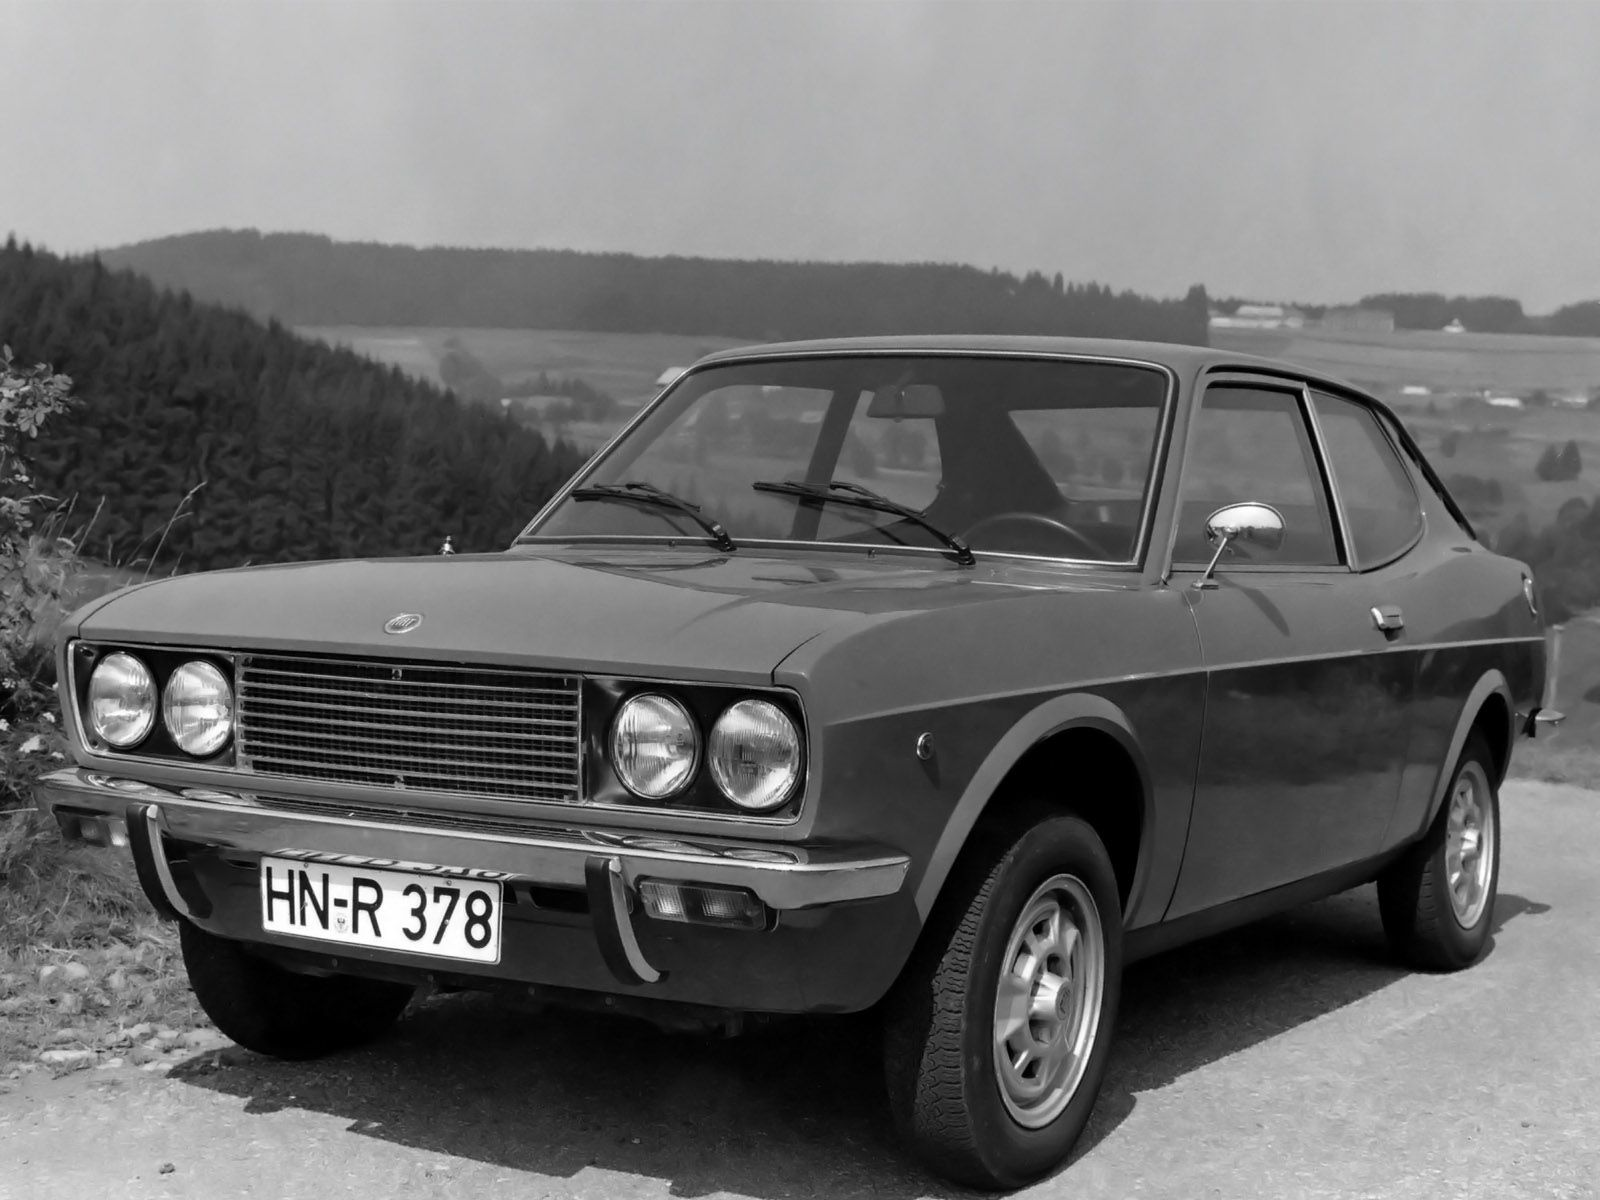 Fiat 128 Coupe Sl 1971 With Images Fiat 128 Fiat European Cars